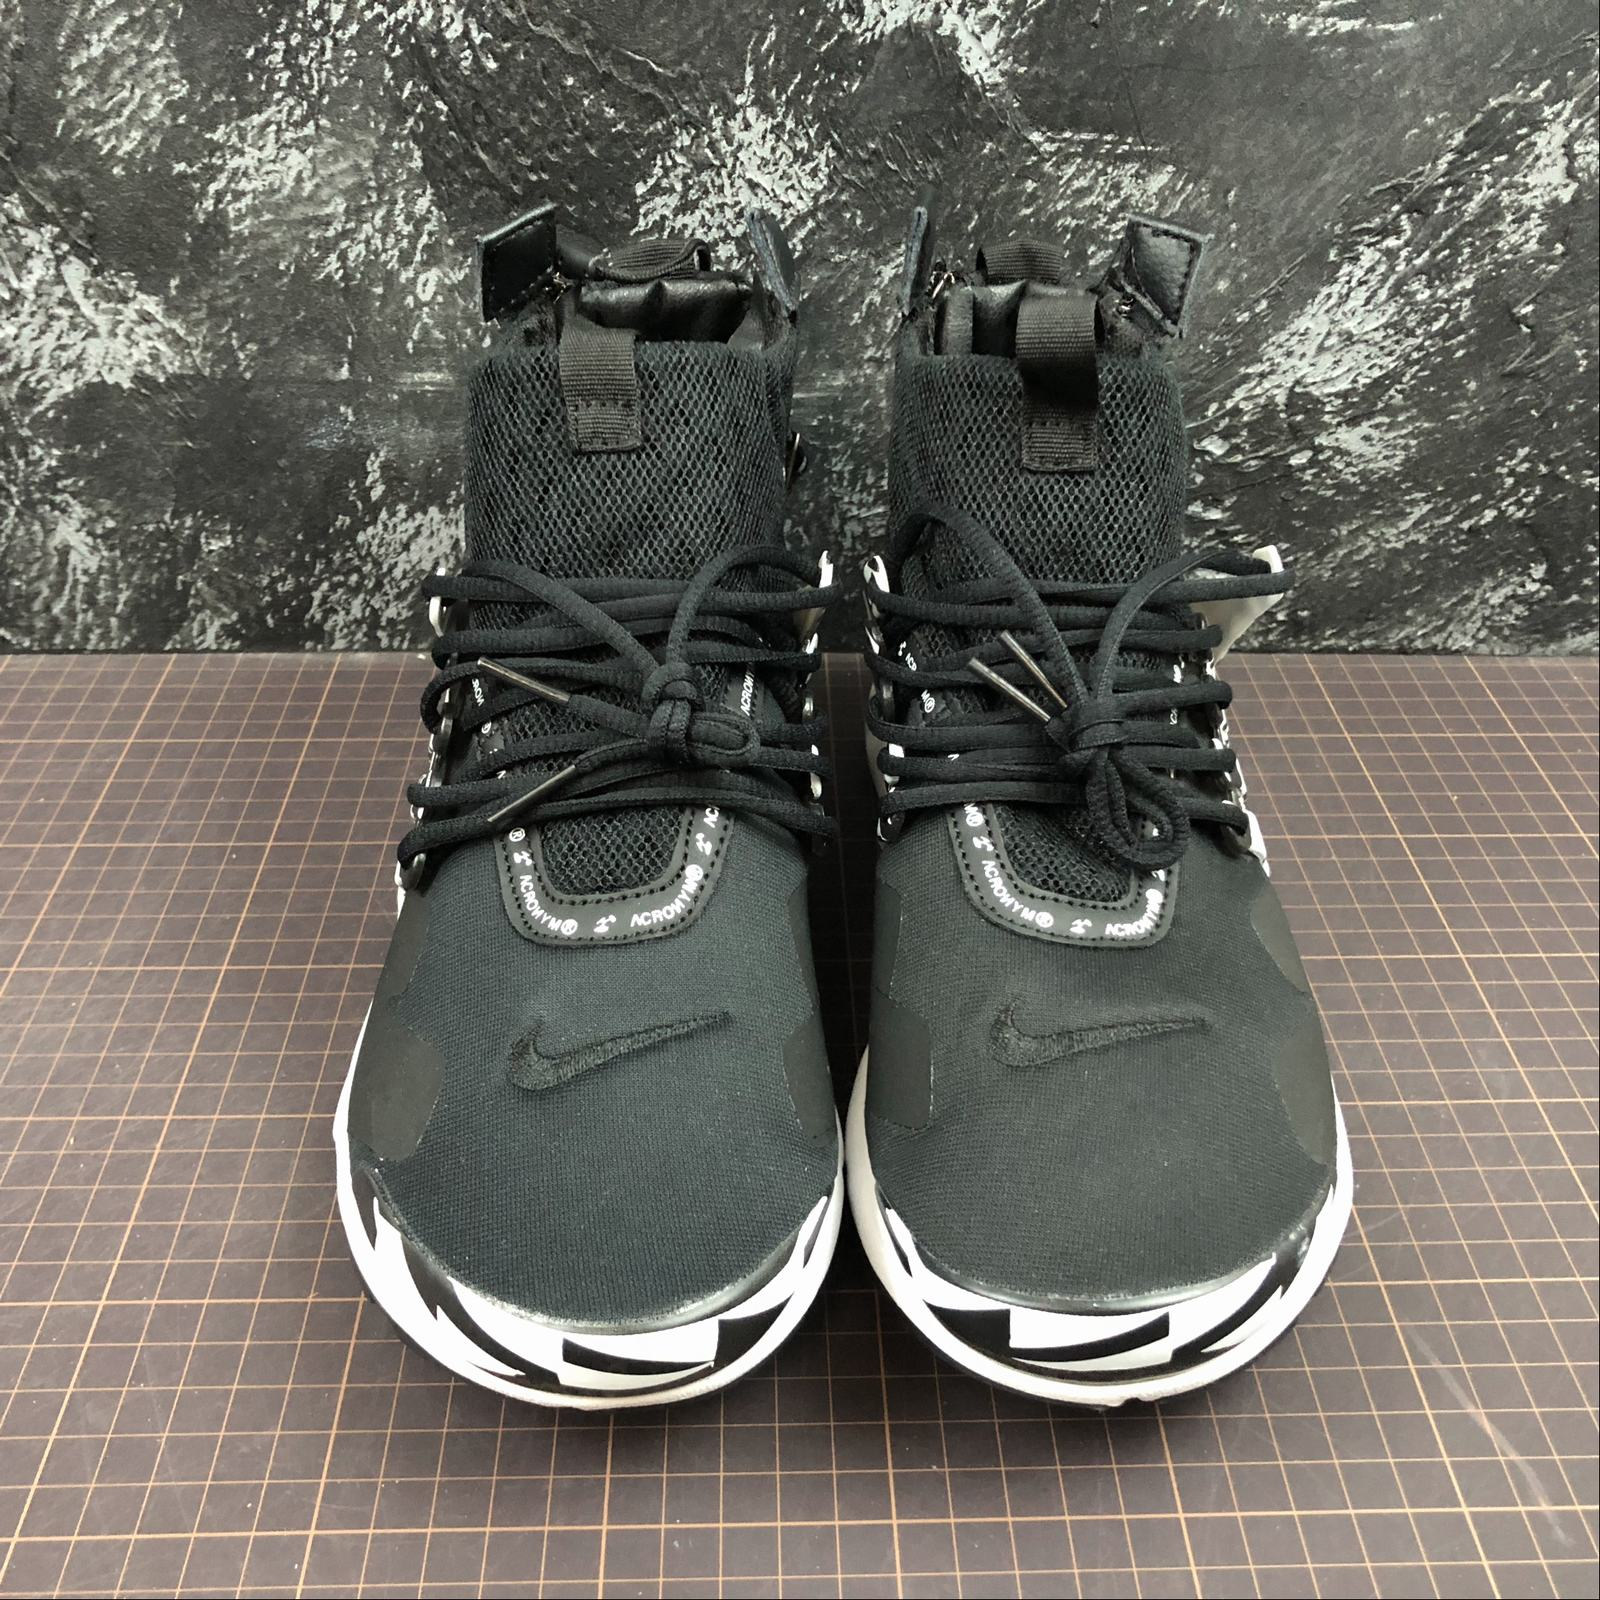 Мужские кроссовки Nike Air Presto Mid Acronym Men Black,White,Black - фото №3